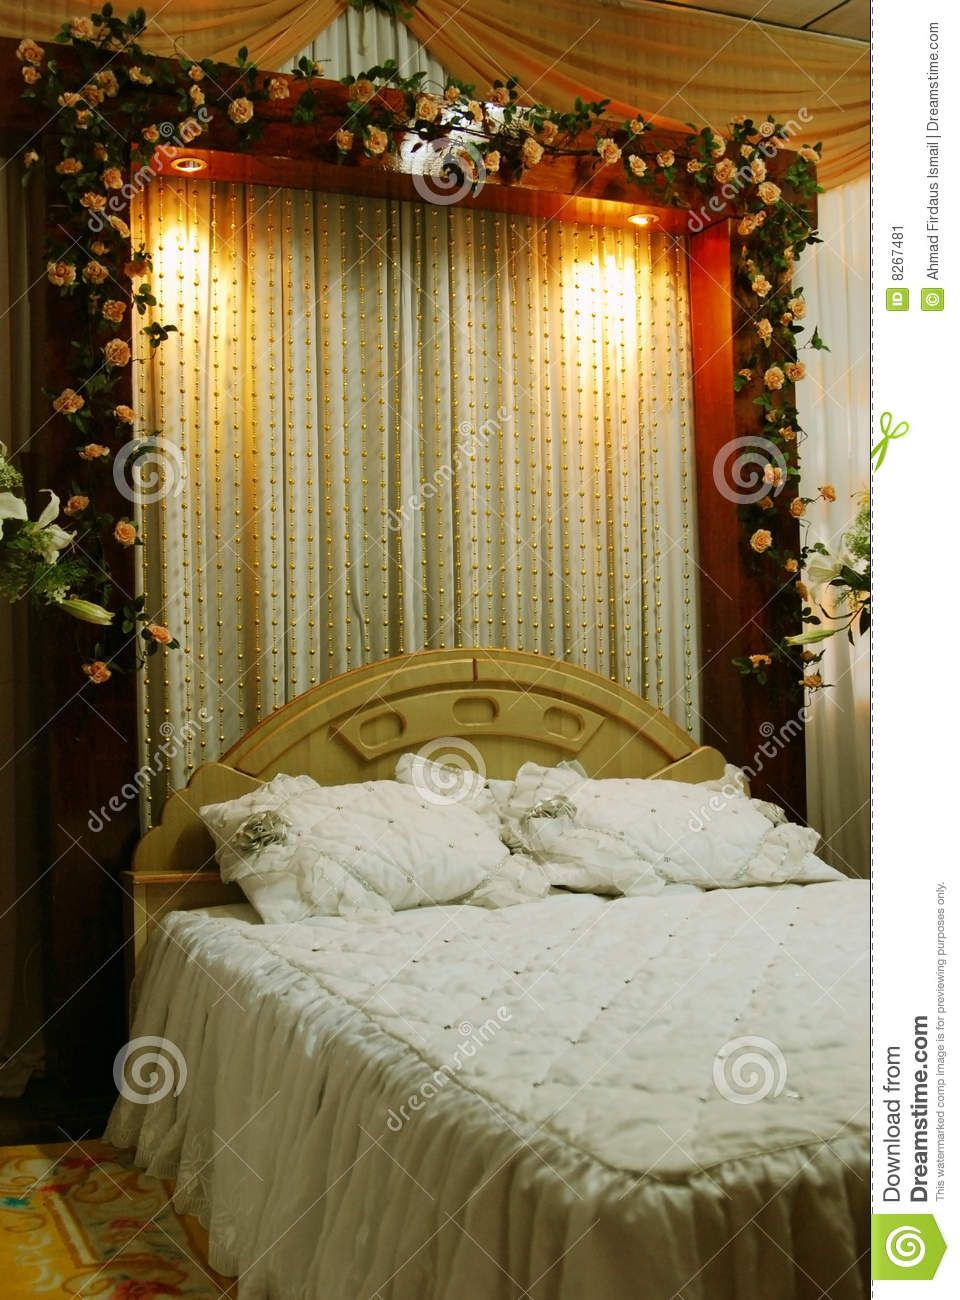 Bedroom decorating ideas for wedding night - Bedroom Wedding Pictures Images Romatic Wedding Night Bedroom Decorating Ideas Things I Love Pinterest Ideas Night And Wedding Pictures